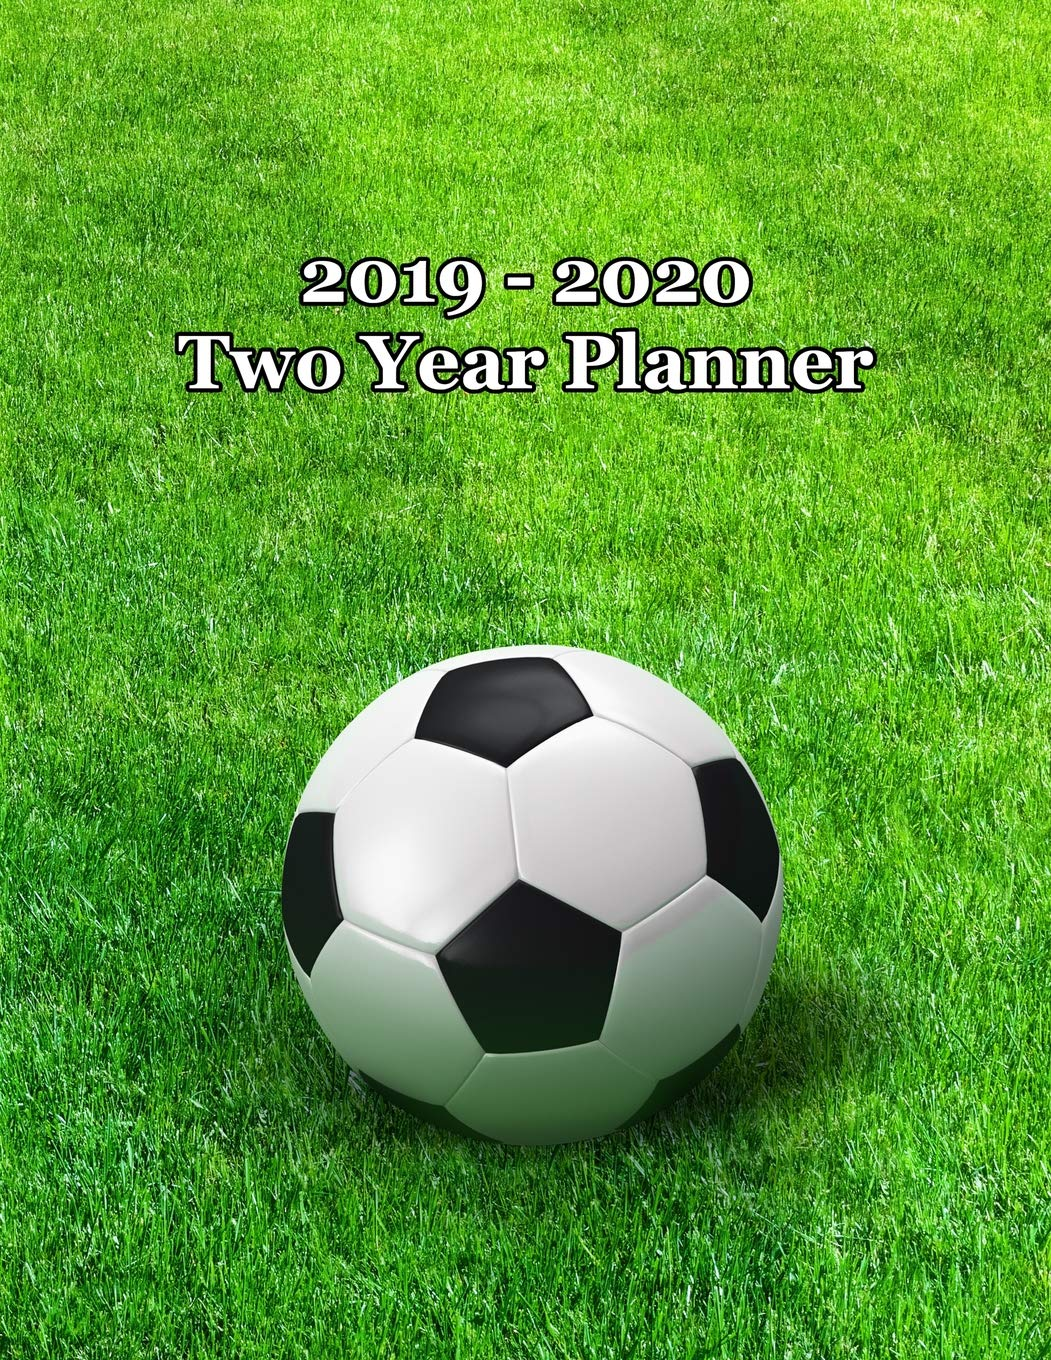 2019 - 2020 Two Year Planner: Soccer Ball on Field Cover - Includes